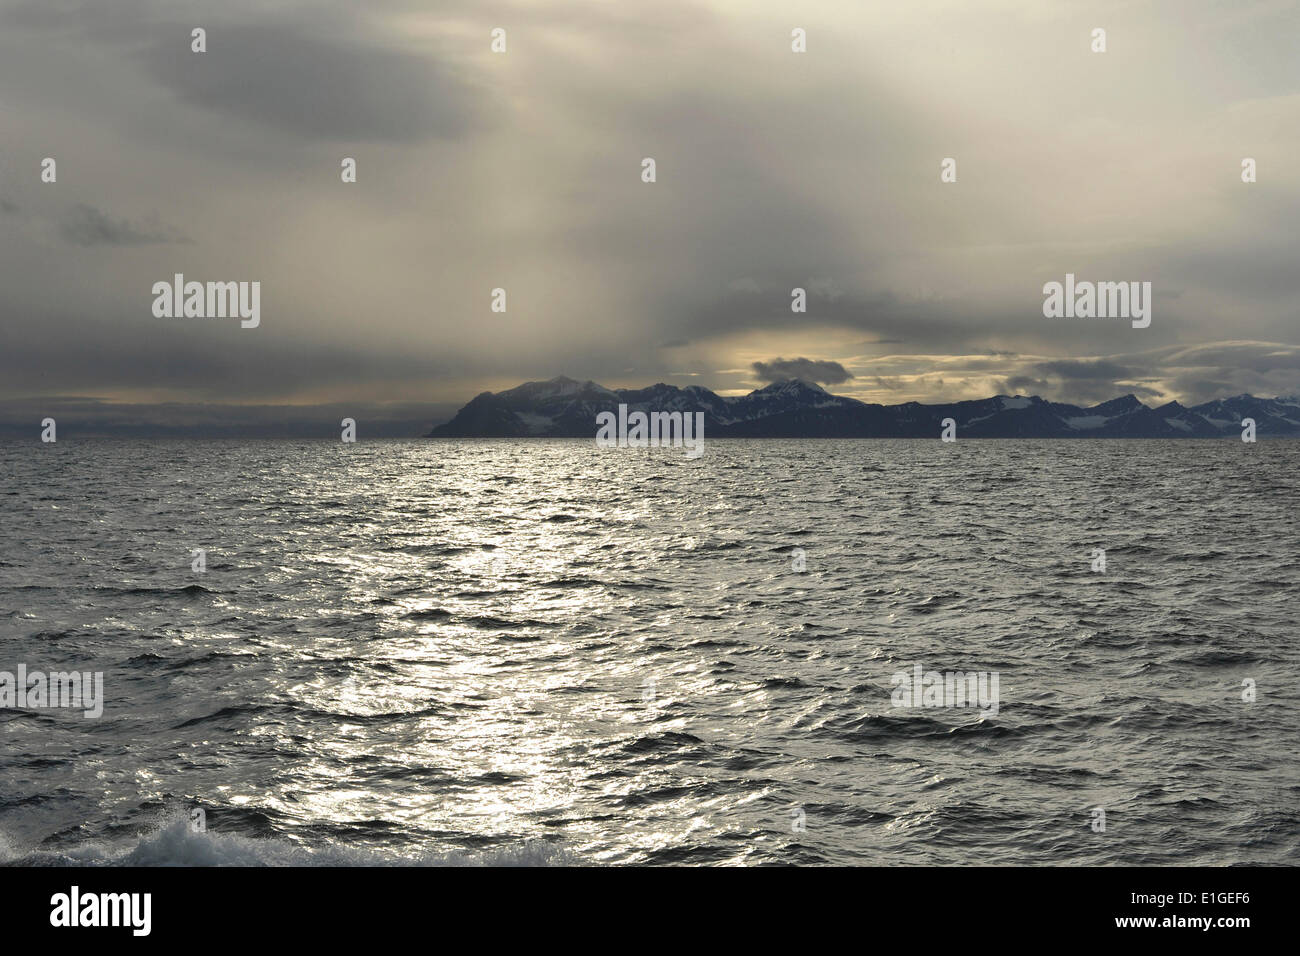 Glistening water of the Isfjord in the backlight with mountains on the horizon, 21 August 2012 - Stock Image